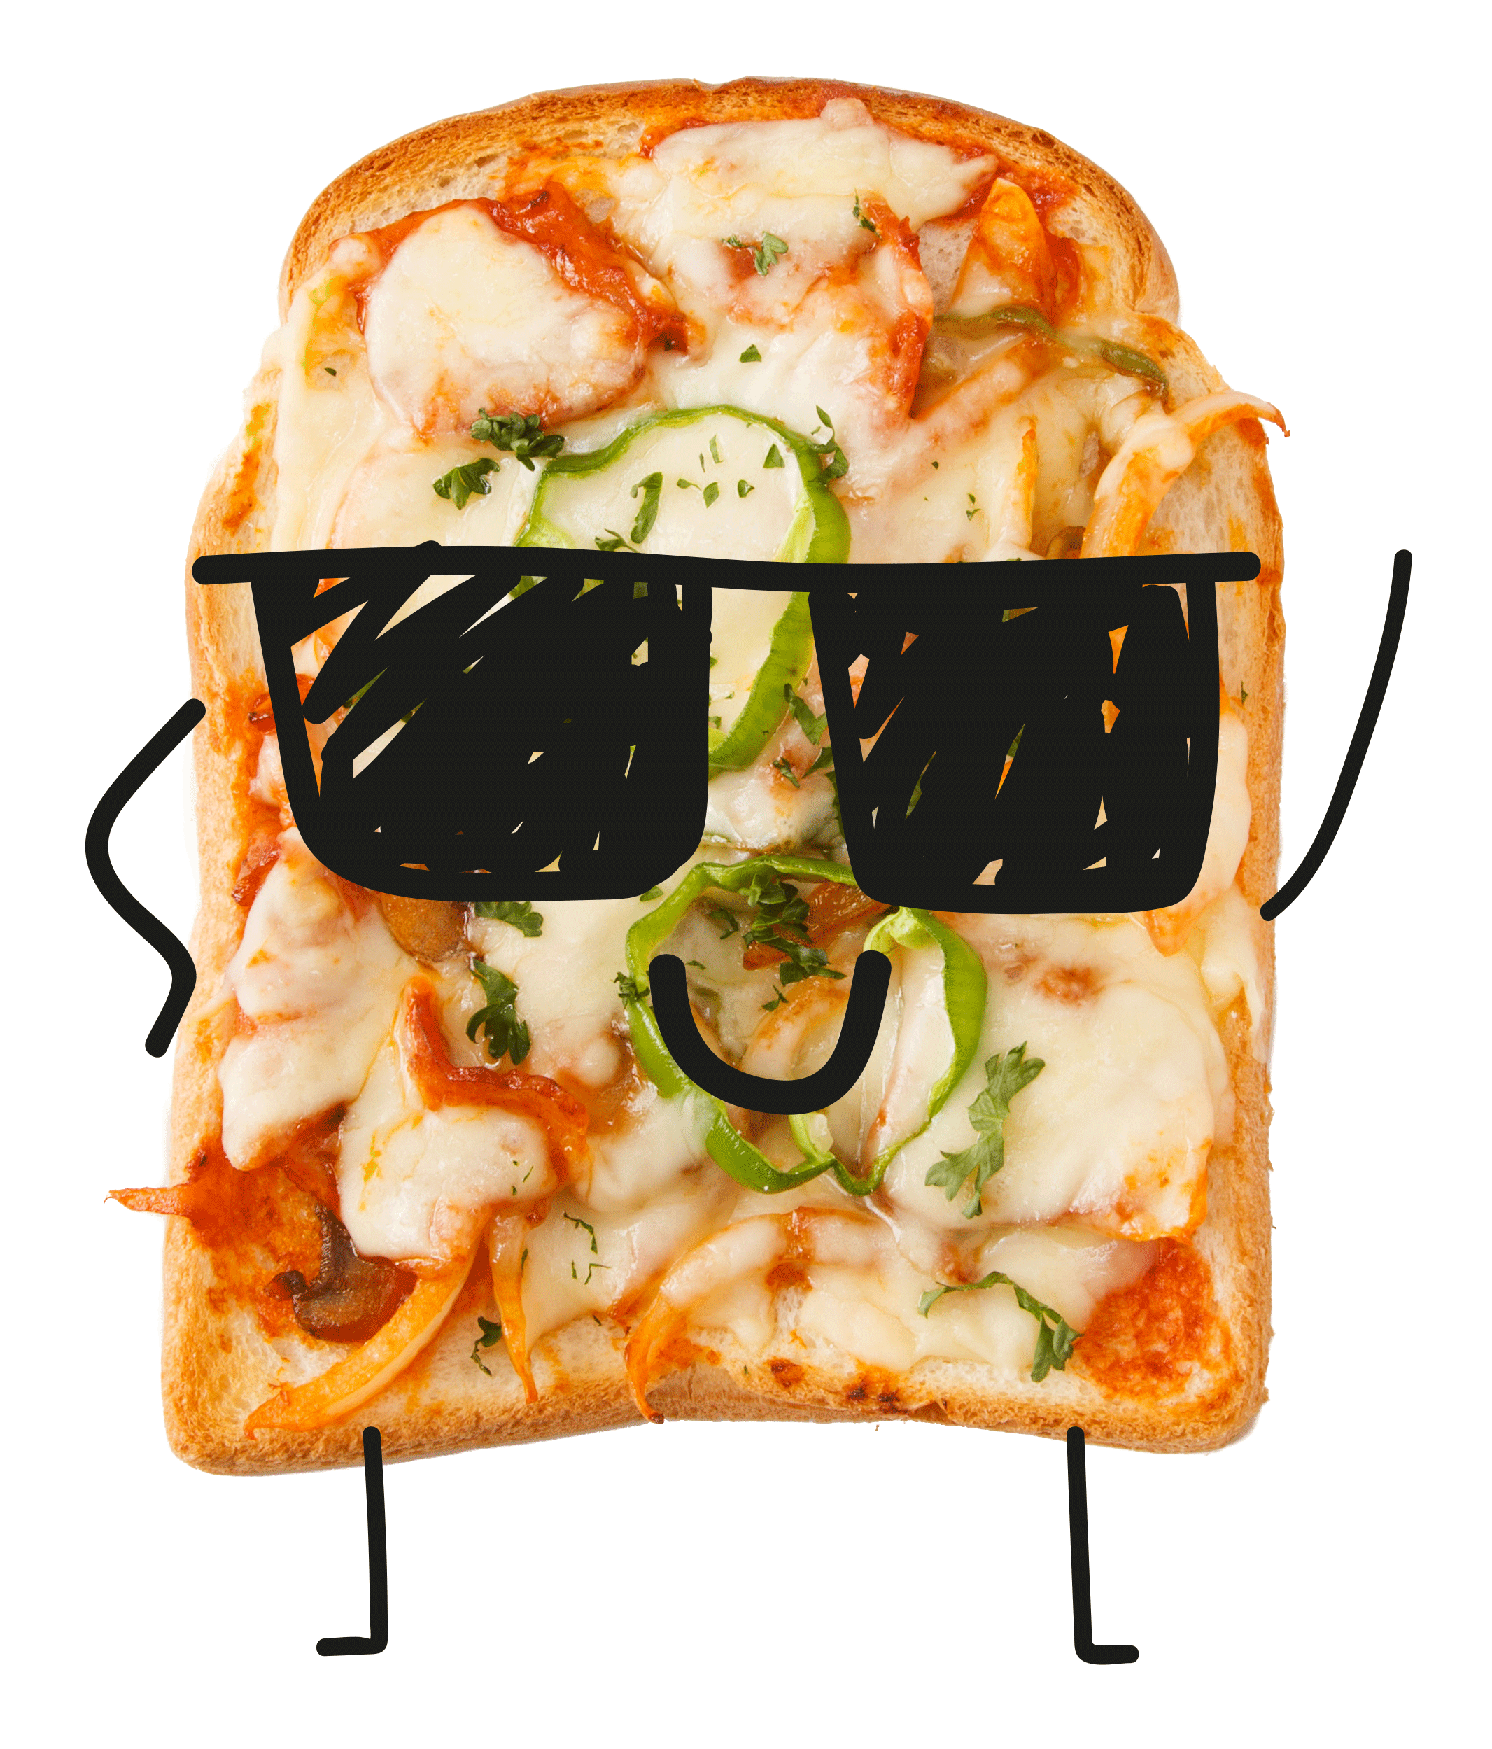 Bin toast apple carrot potato pizza